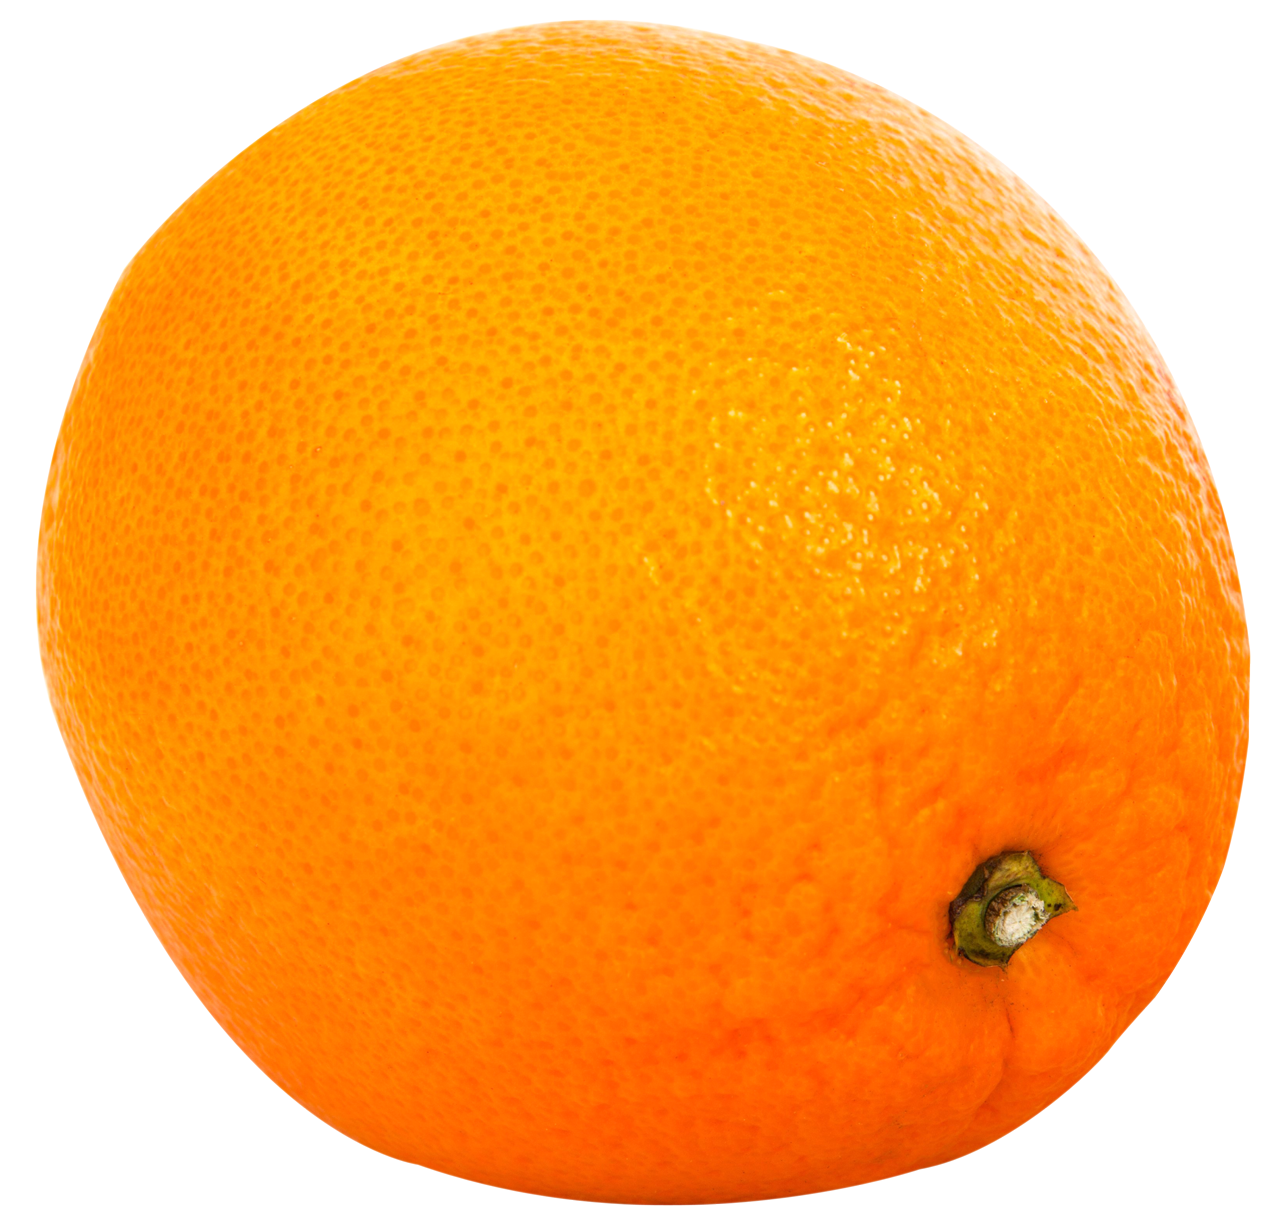 orange fruit png image pngpix #15287